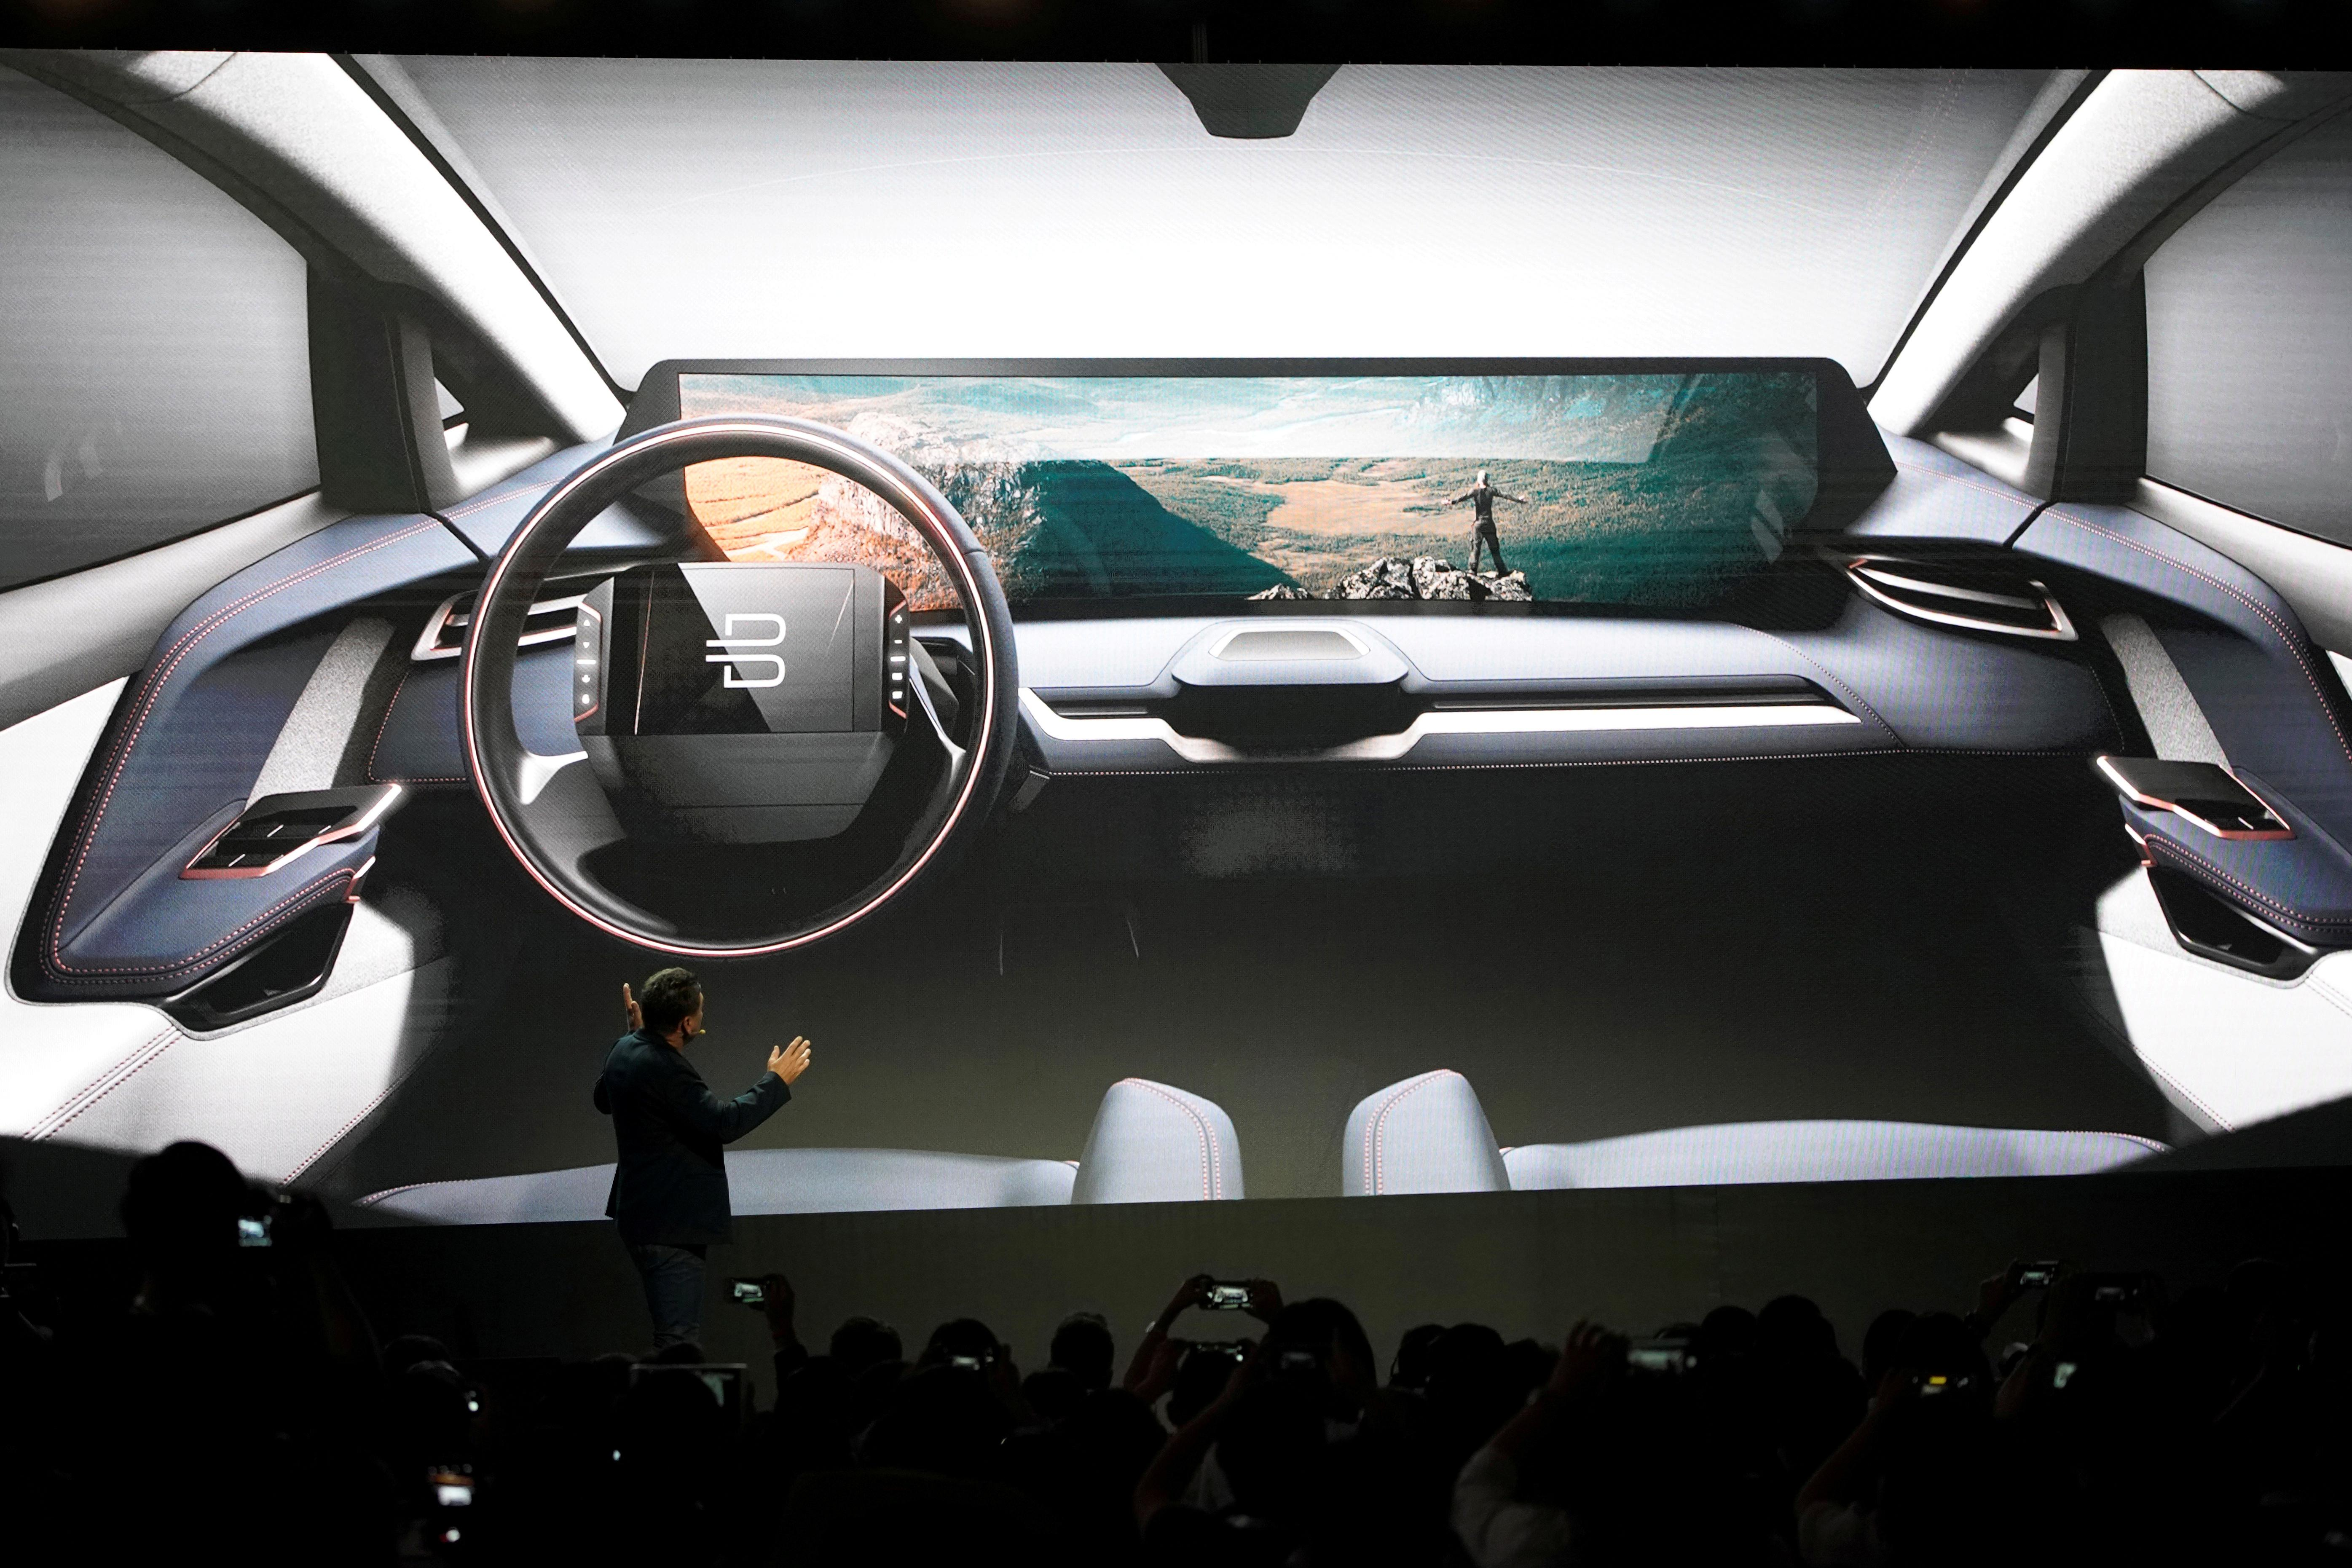 Electric dreams in danger as funding dwindles for China's Tesla challengers